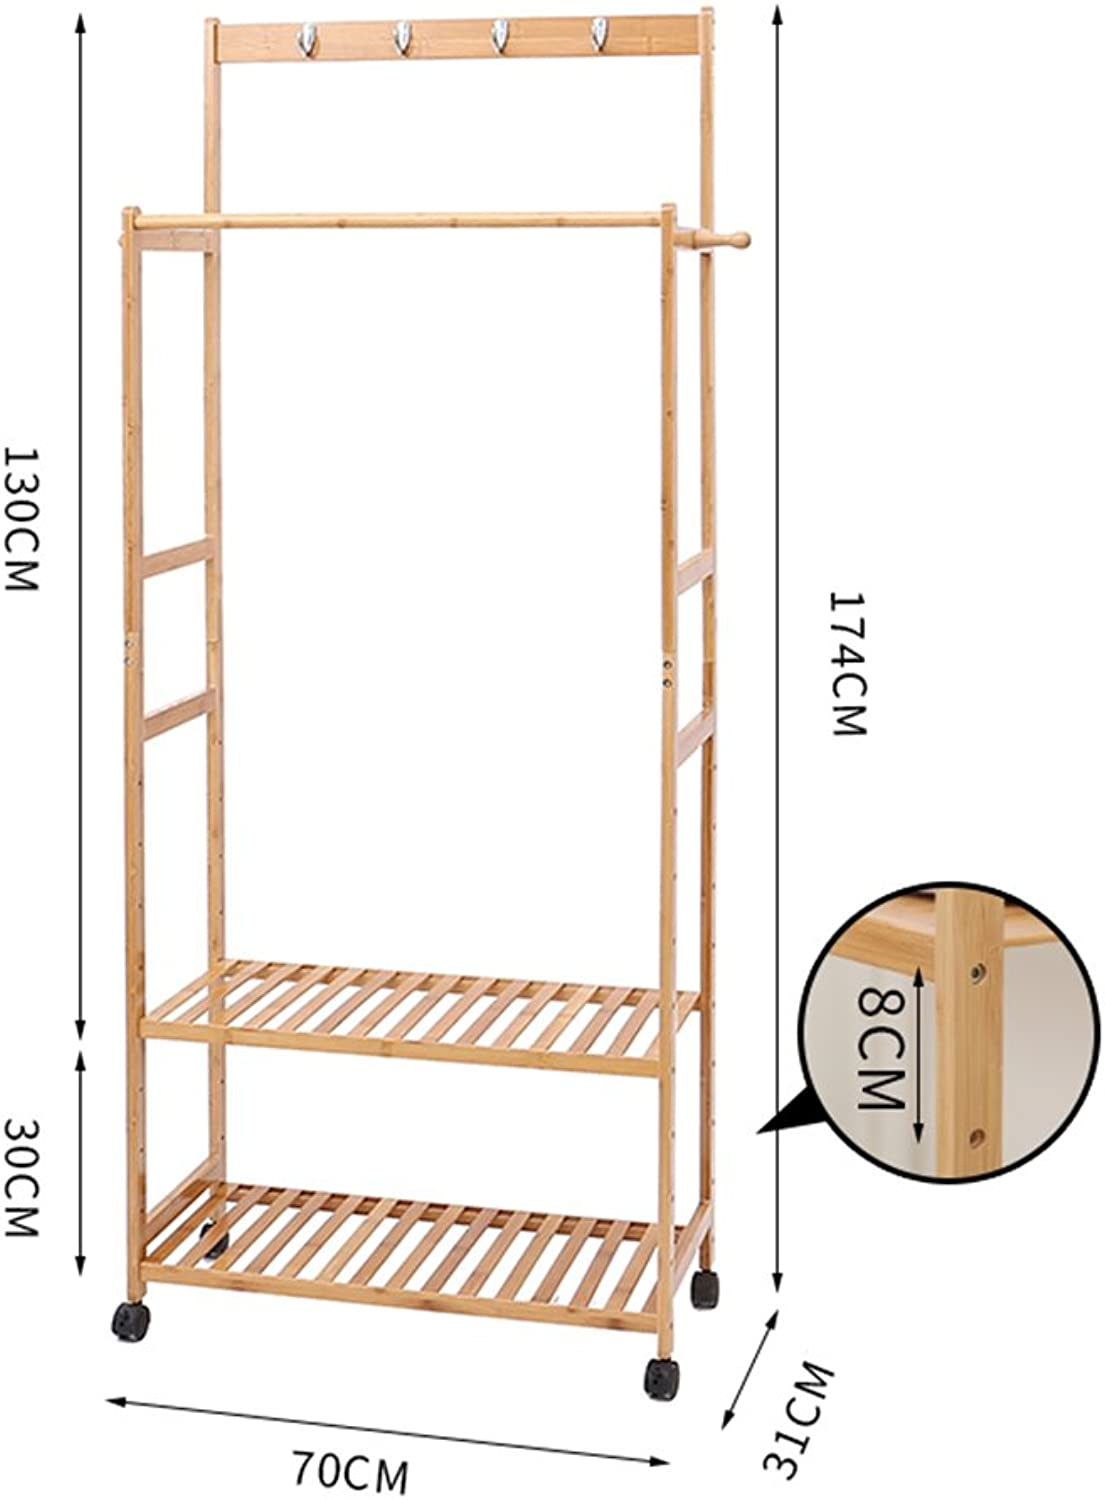 QIANGDA Floor Standing Coat Rack Bamboo Double Rod Adjustable Height with shoes Shelf, Wood color, 6 Sizes Optional (color   2 Tiers, Size   70 x 31 x 174cm)